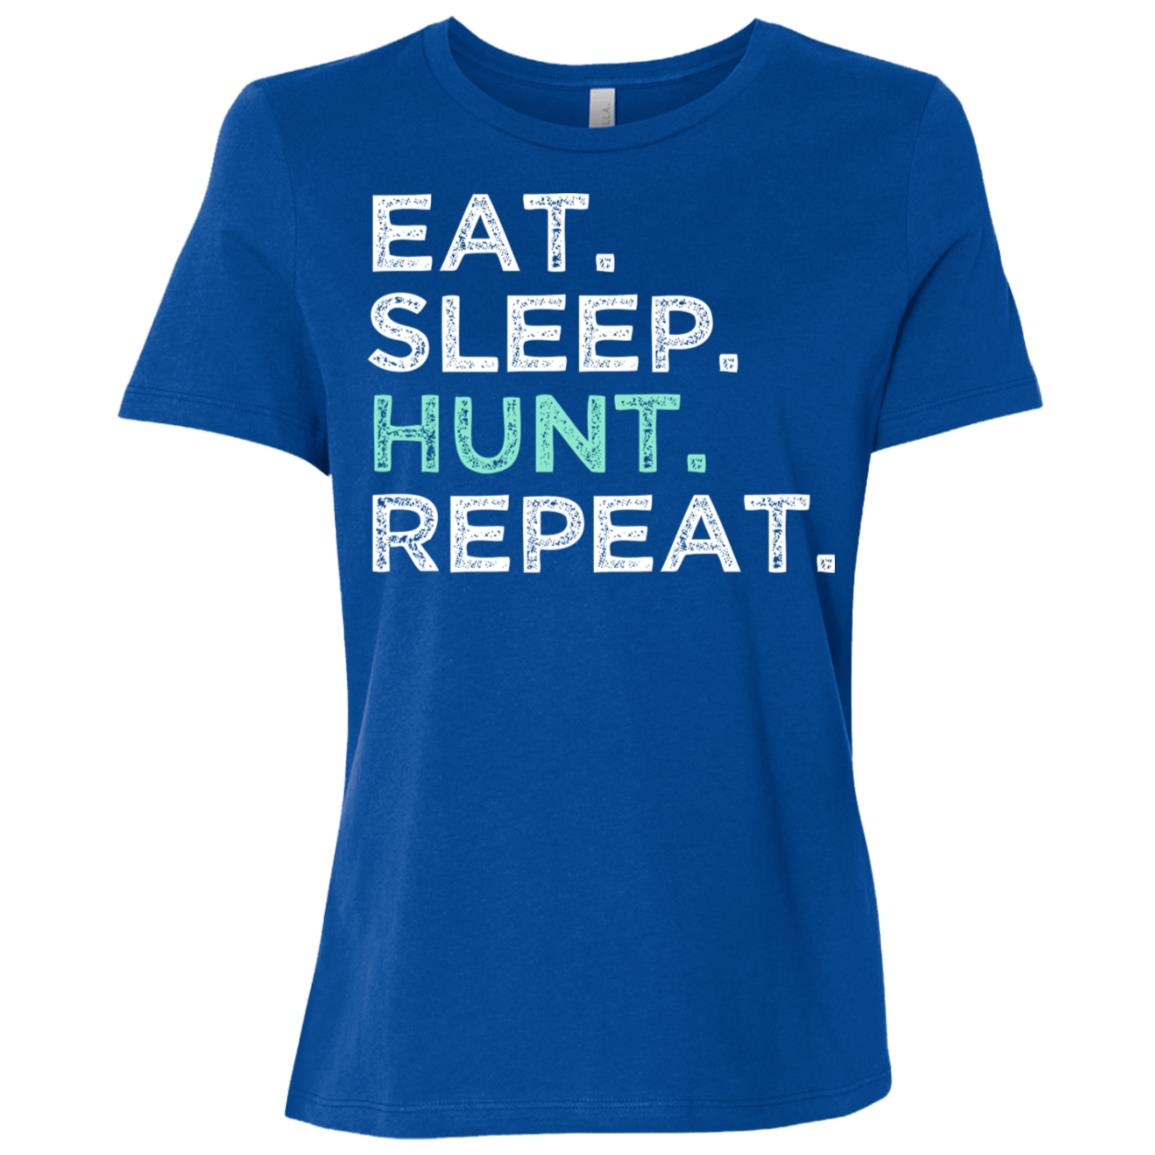 Eat Sleep Hunt Repeat. Funny Hunting Women Short Sleeve T-Shirt